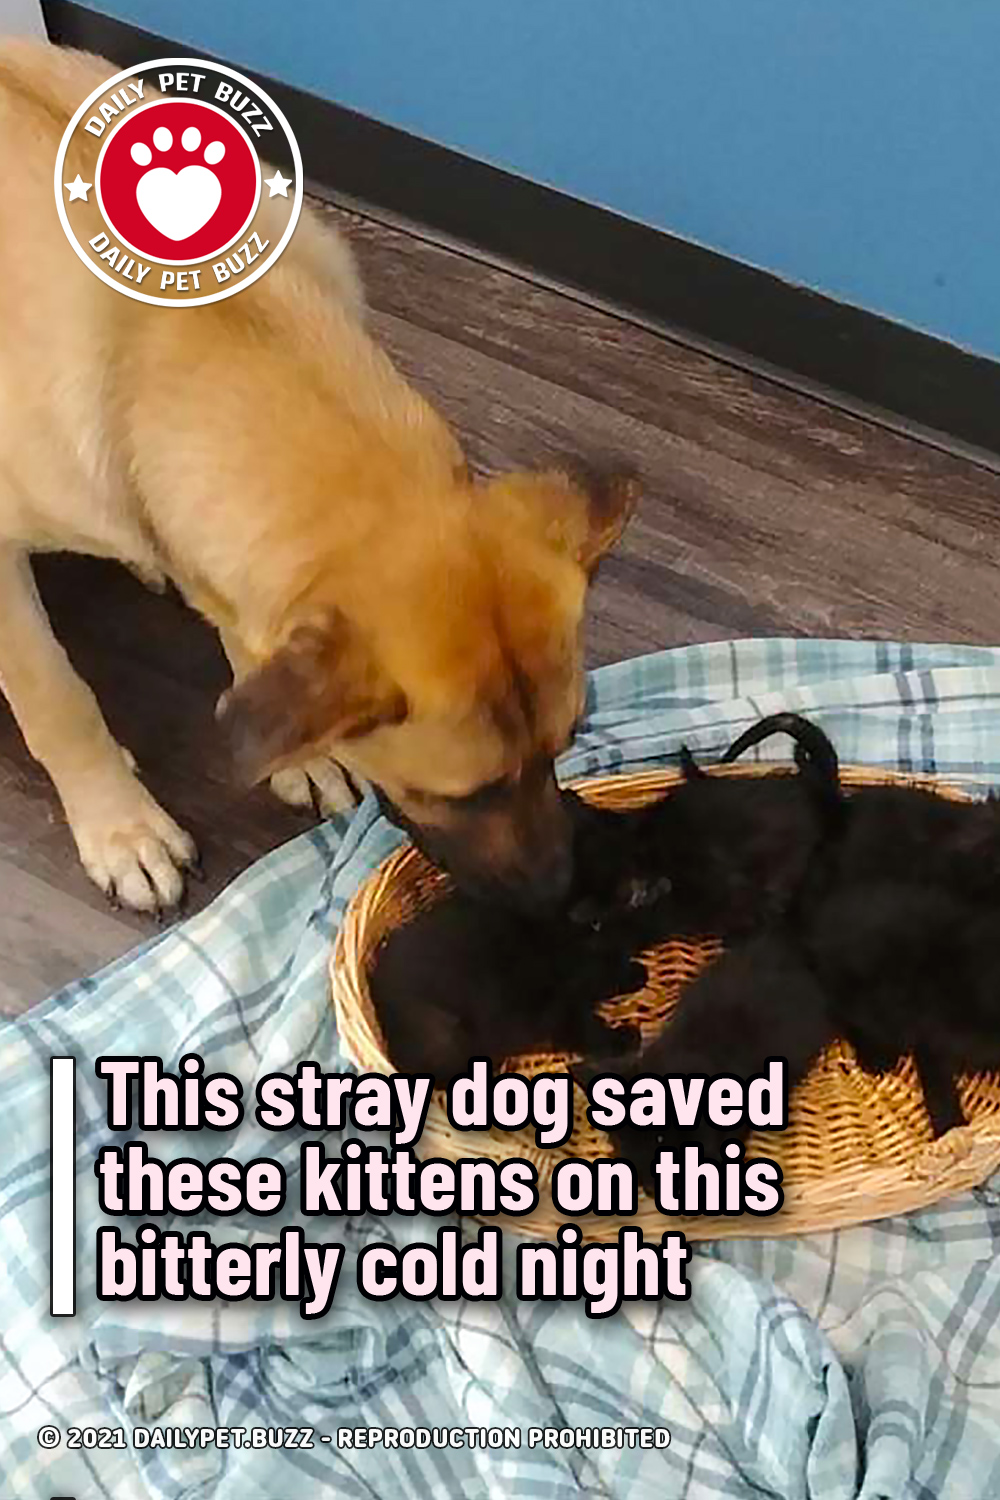 This stray dog saved these kittens on this bitterly cold night